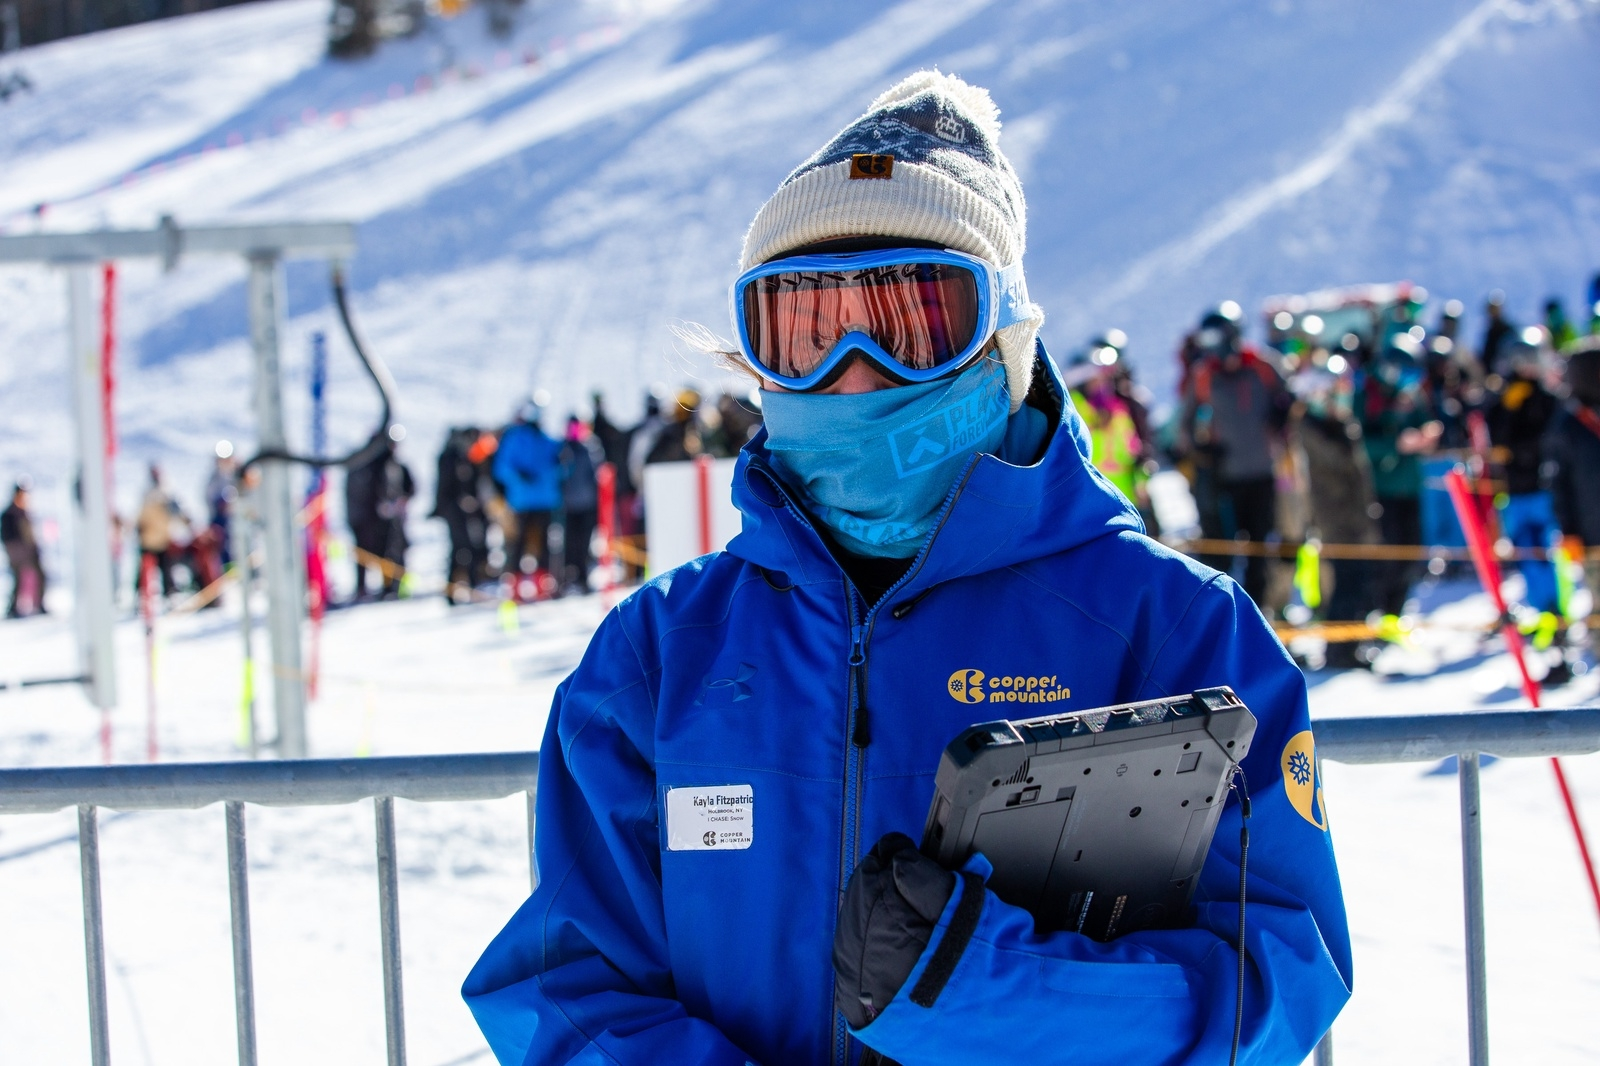 Kayla Fitzpatrick works at Copper Mountain Resort on opening day Monday, Nov. 30. | Photo by Liz Copan / Studio Copan